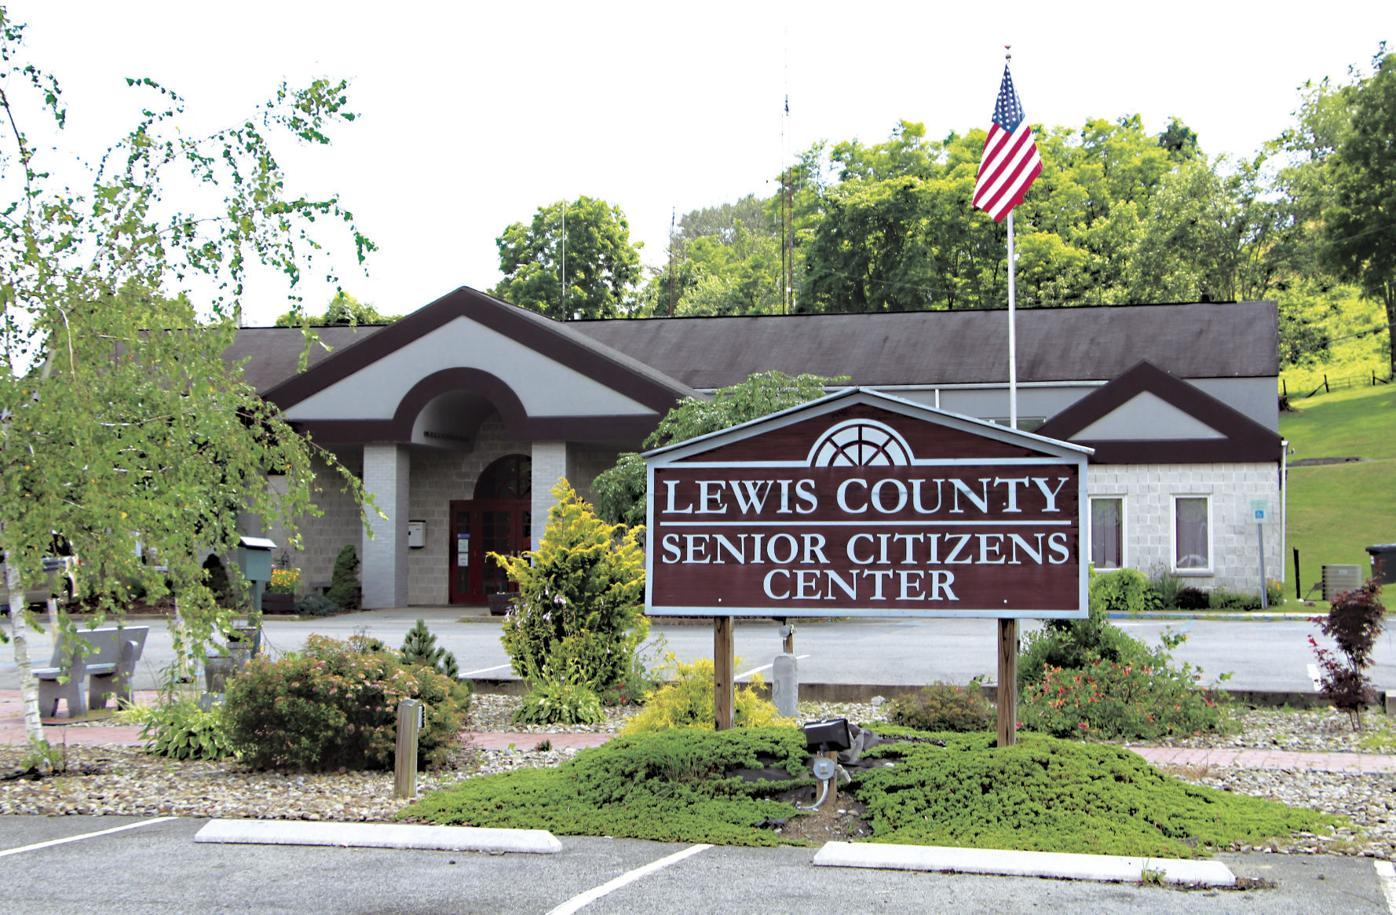 Lewis County Senior Center takes care of elderly amid COVID-19